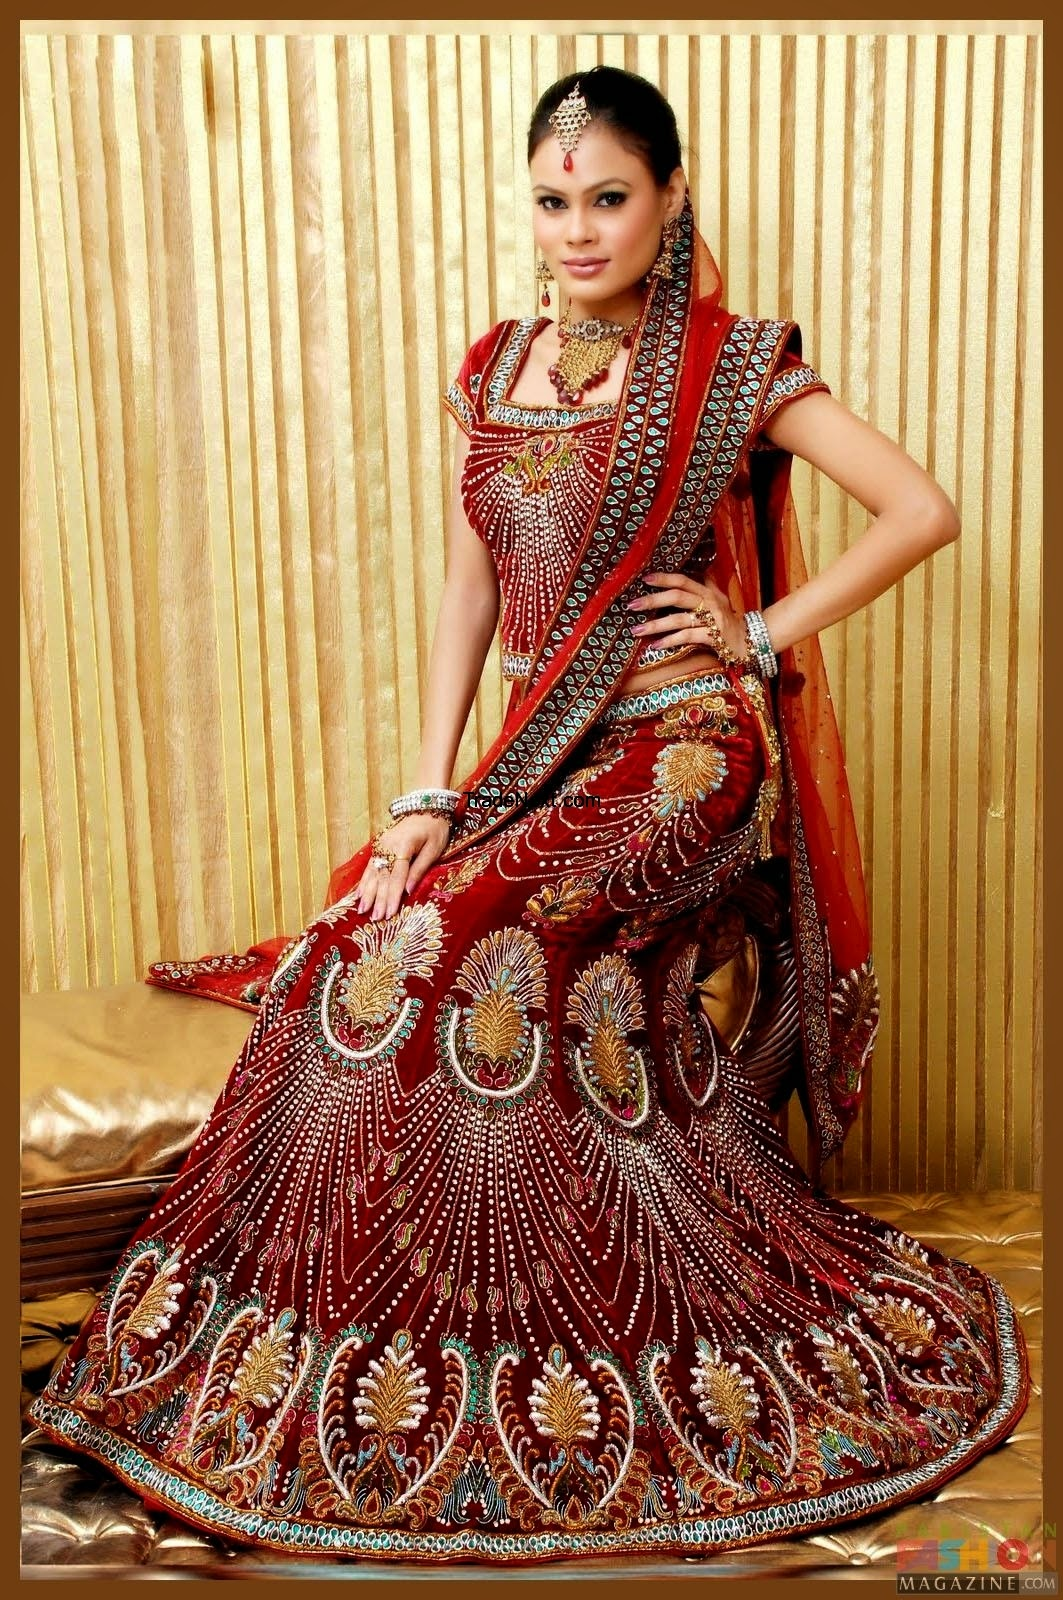 New Bridal Wedding Dresses Collection Wallpapers Free Download